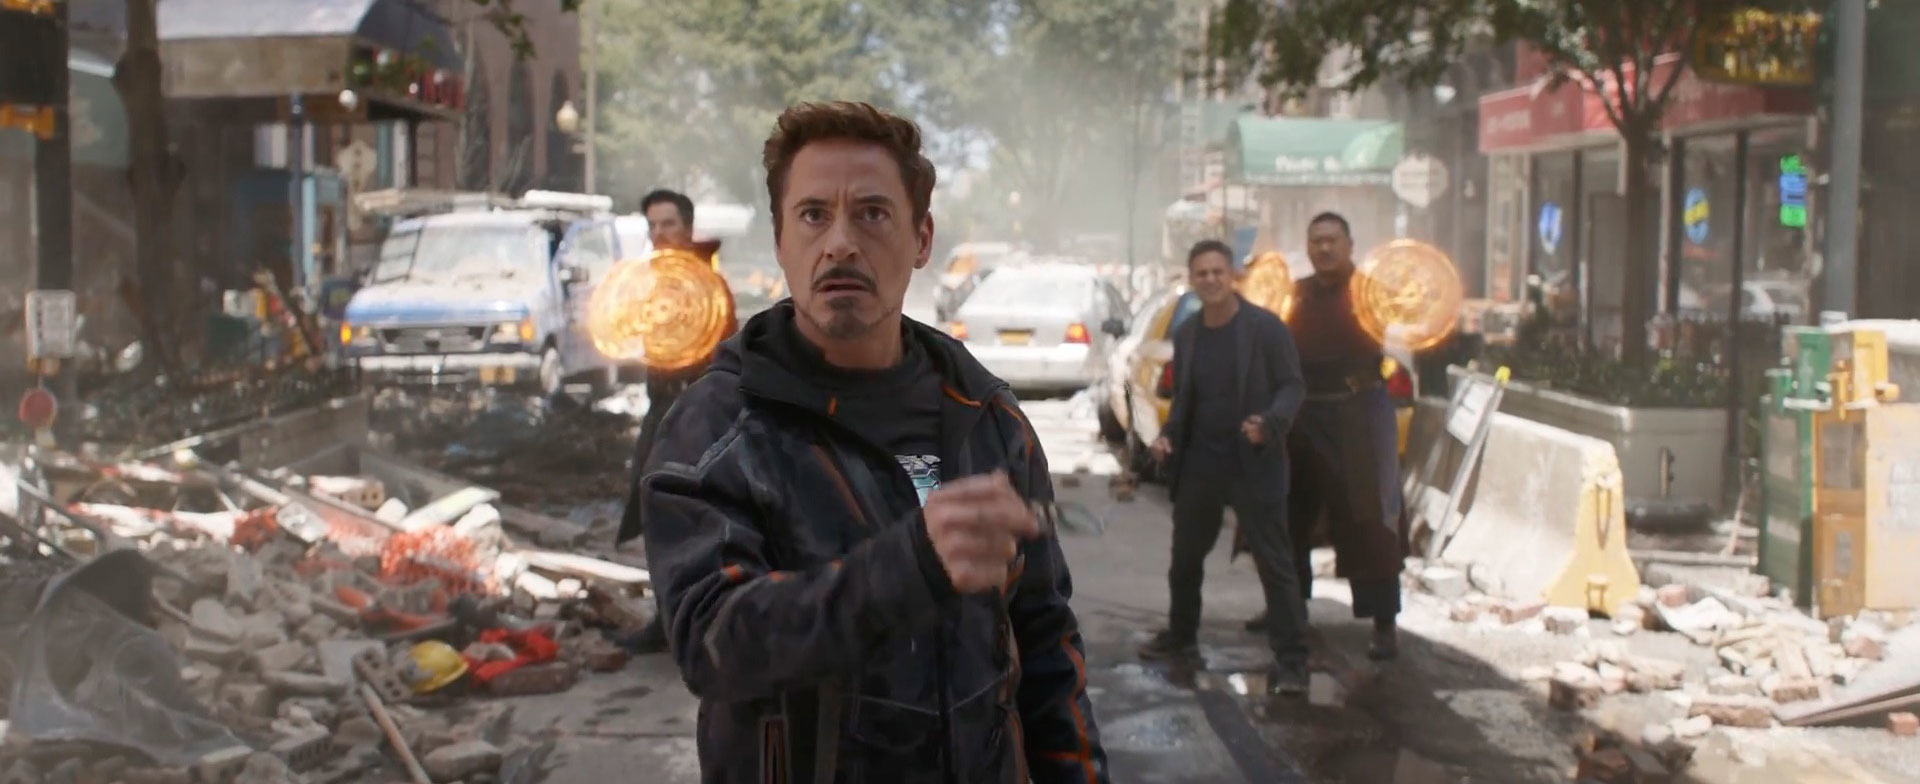 Avengers: Infinity War reveals new Iron Man suit with WINGS and a new arm – plus a new look for Black Widow